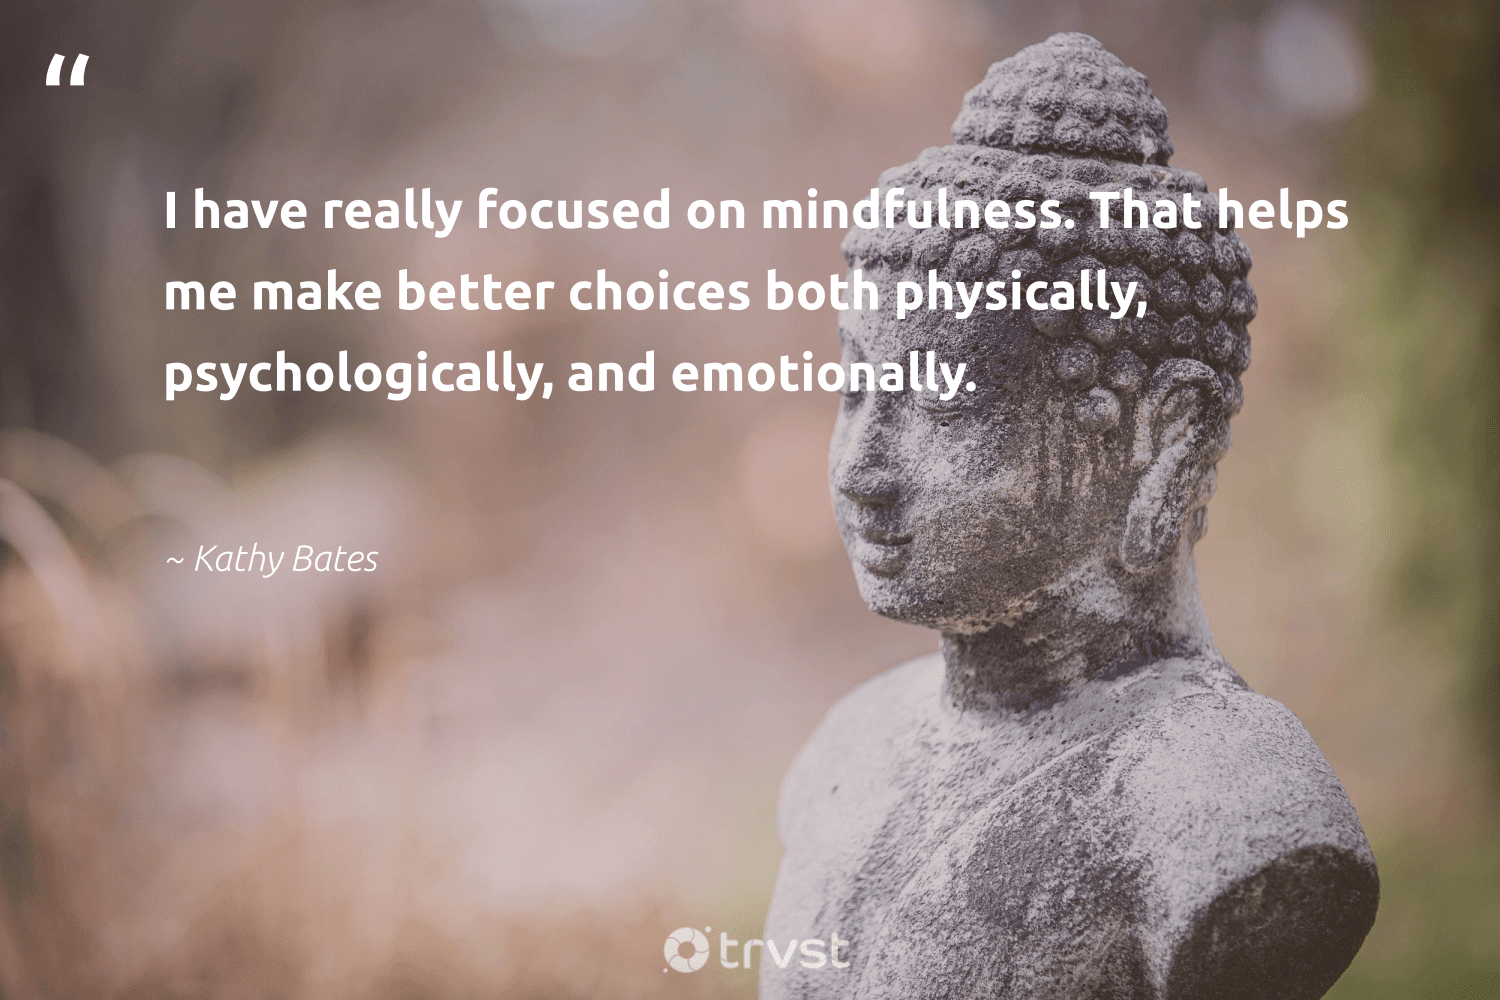 """""""I have really focused on mindfulness. That helps me make better choices both physically, psychologically, and emotionally.""""  - Kathy Bates #trvst #quotes #mindfulness #mindful #wellness #begreat #dotherightthing #mindset #meditation #changemakers #bethechange #goals"""